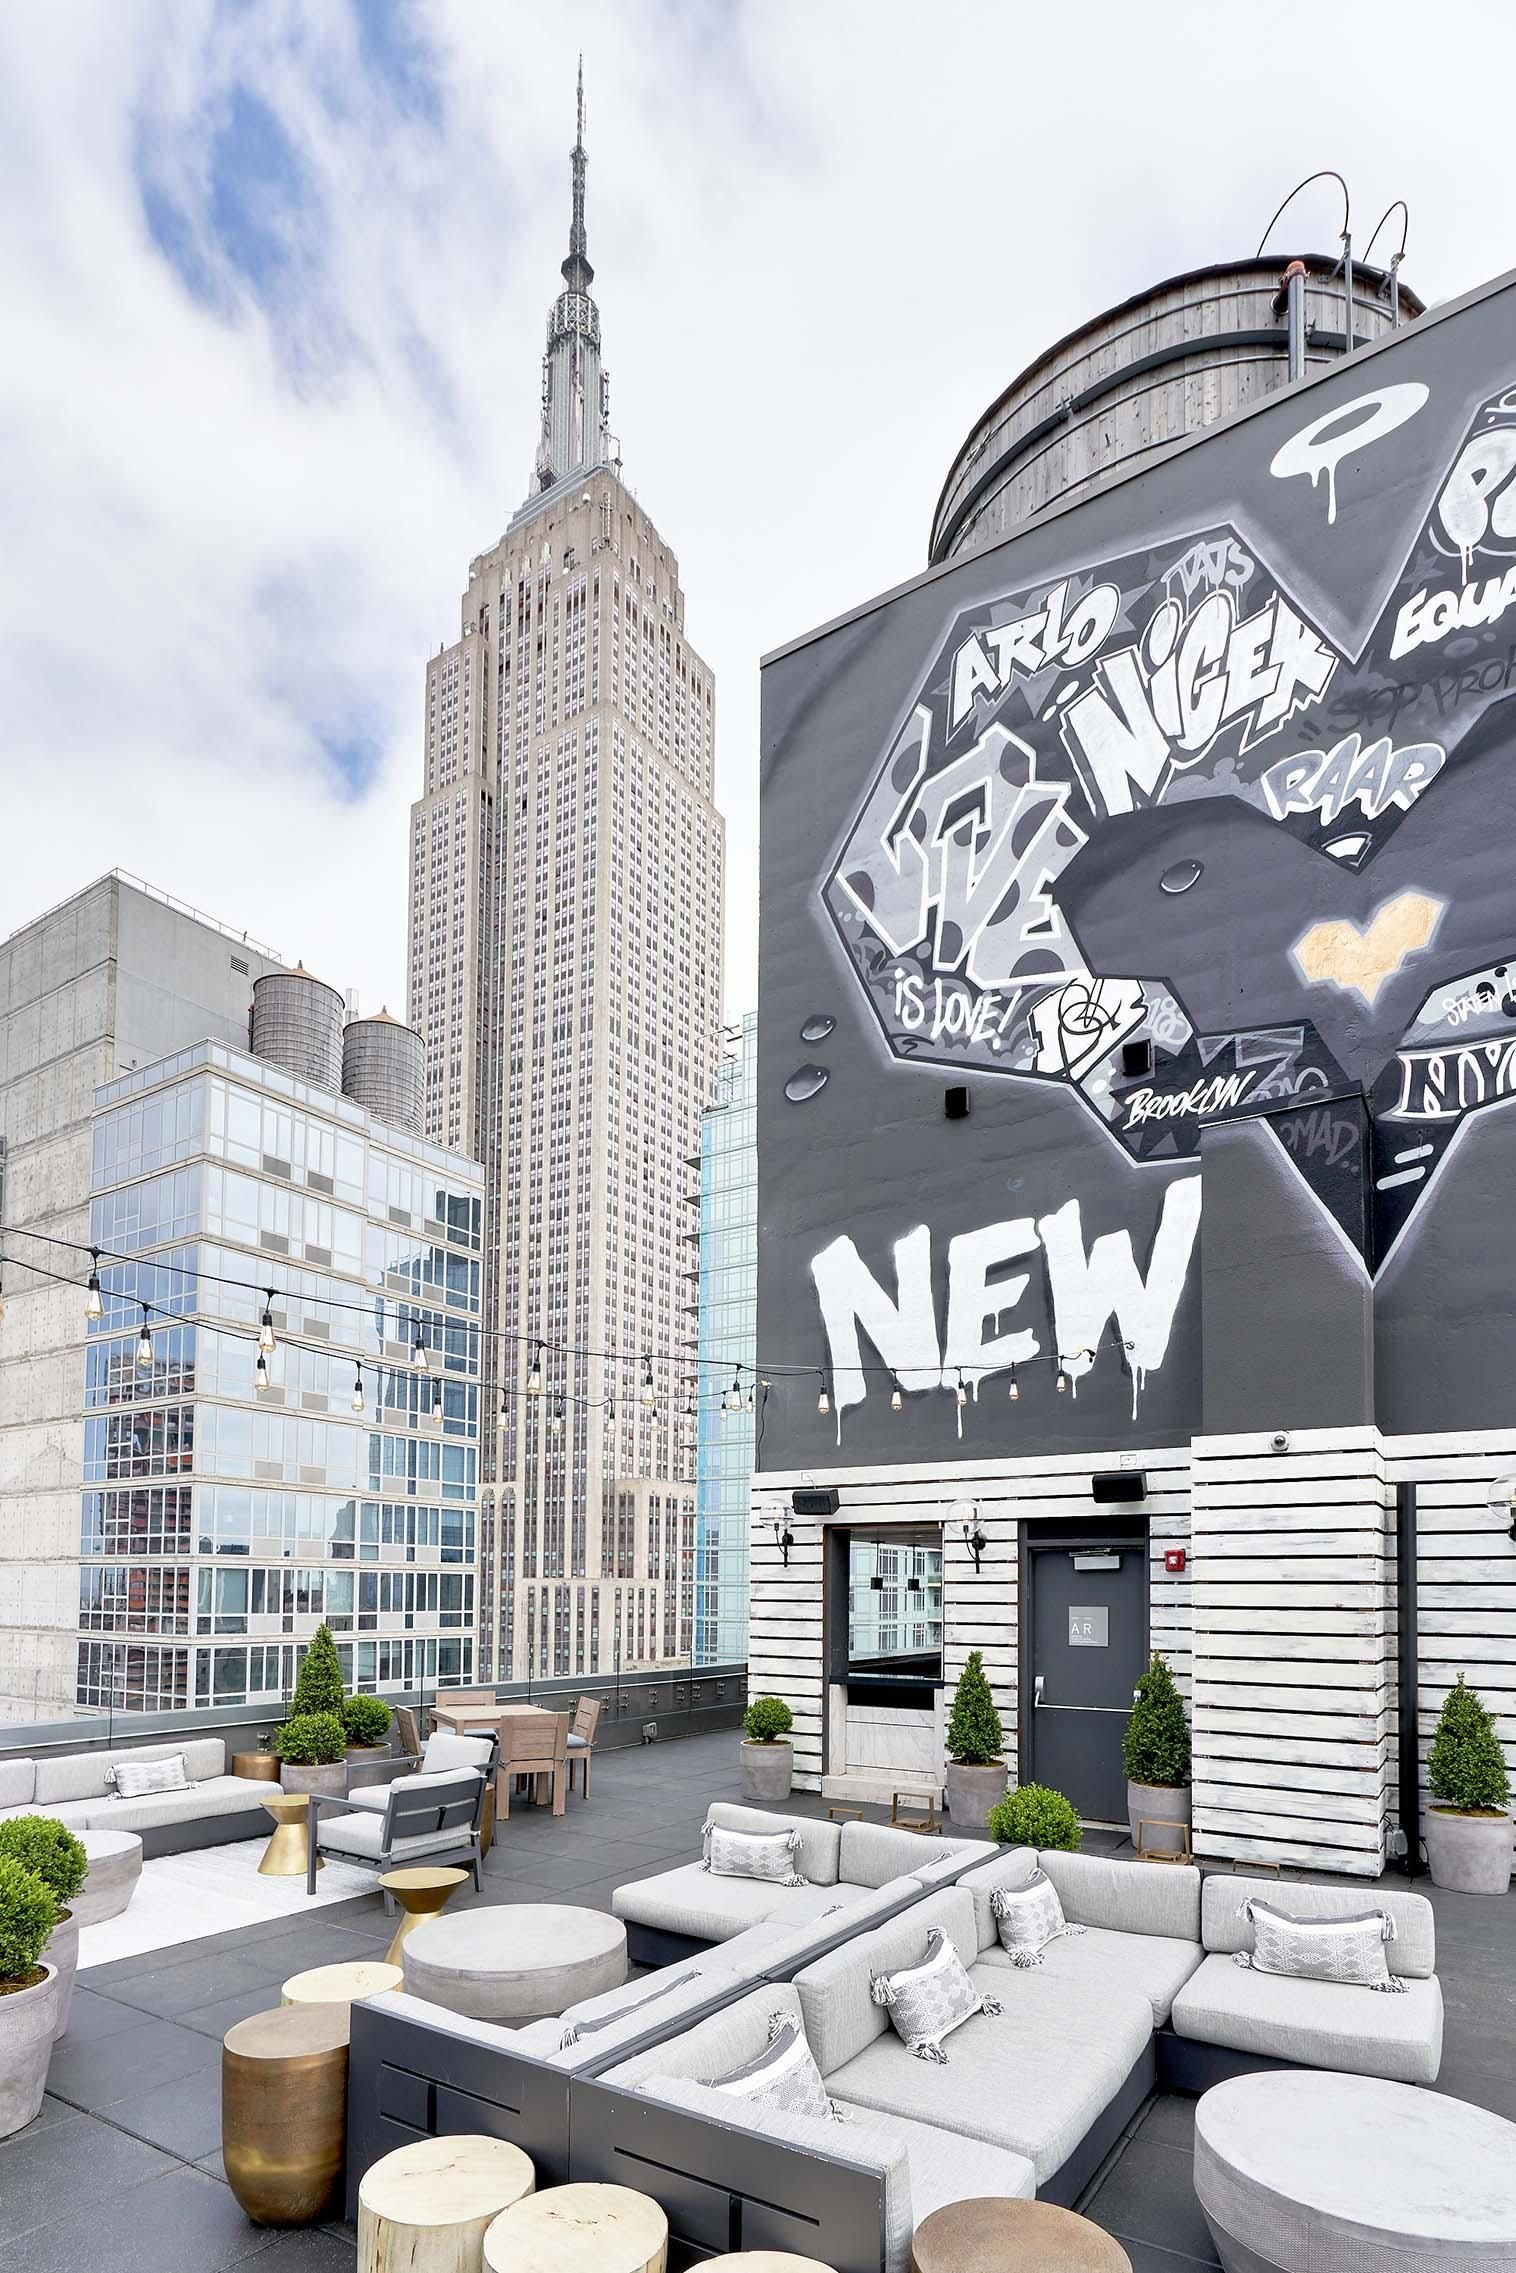 Best Rooftop Bars in NYC | Nyc rooftop, Rooftop bars nyc, Nyc